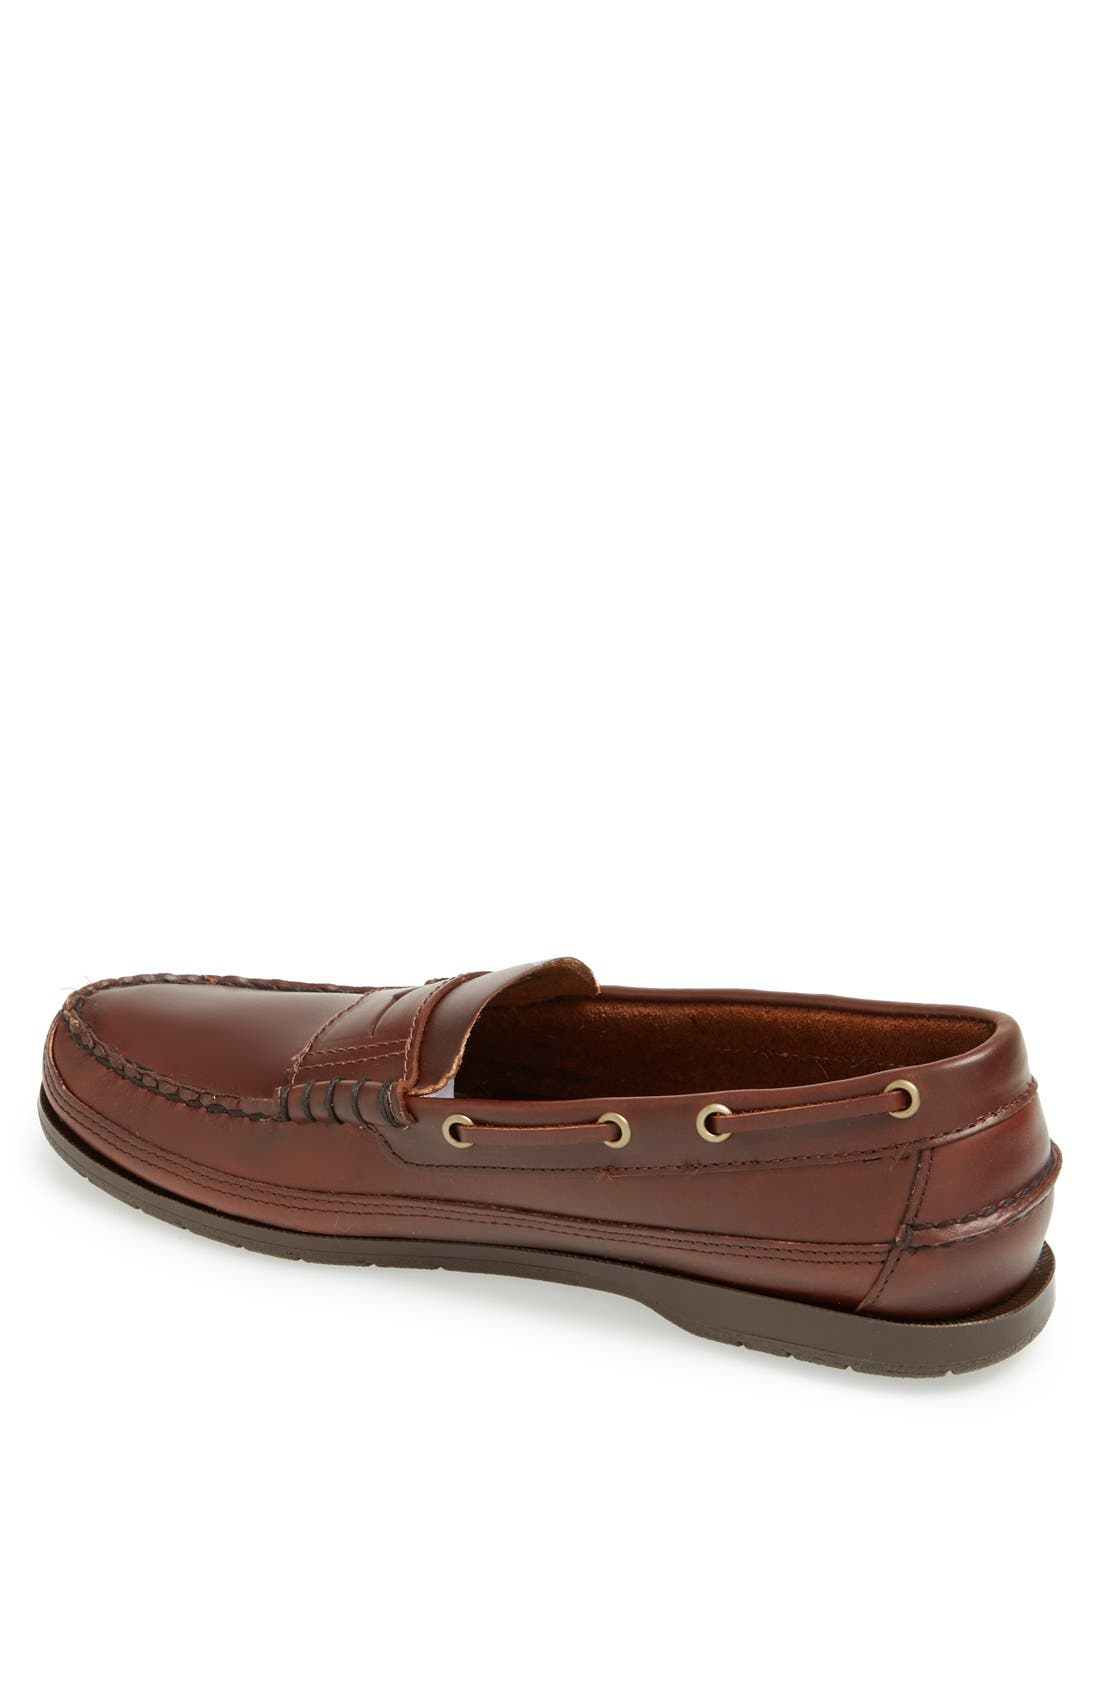 'Sloop' Penny Loafer,                             Alternate thumbnail 2, color,                             Brown